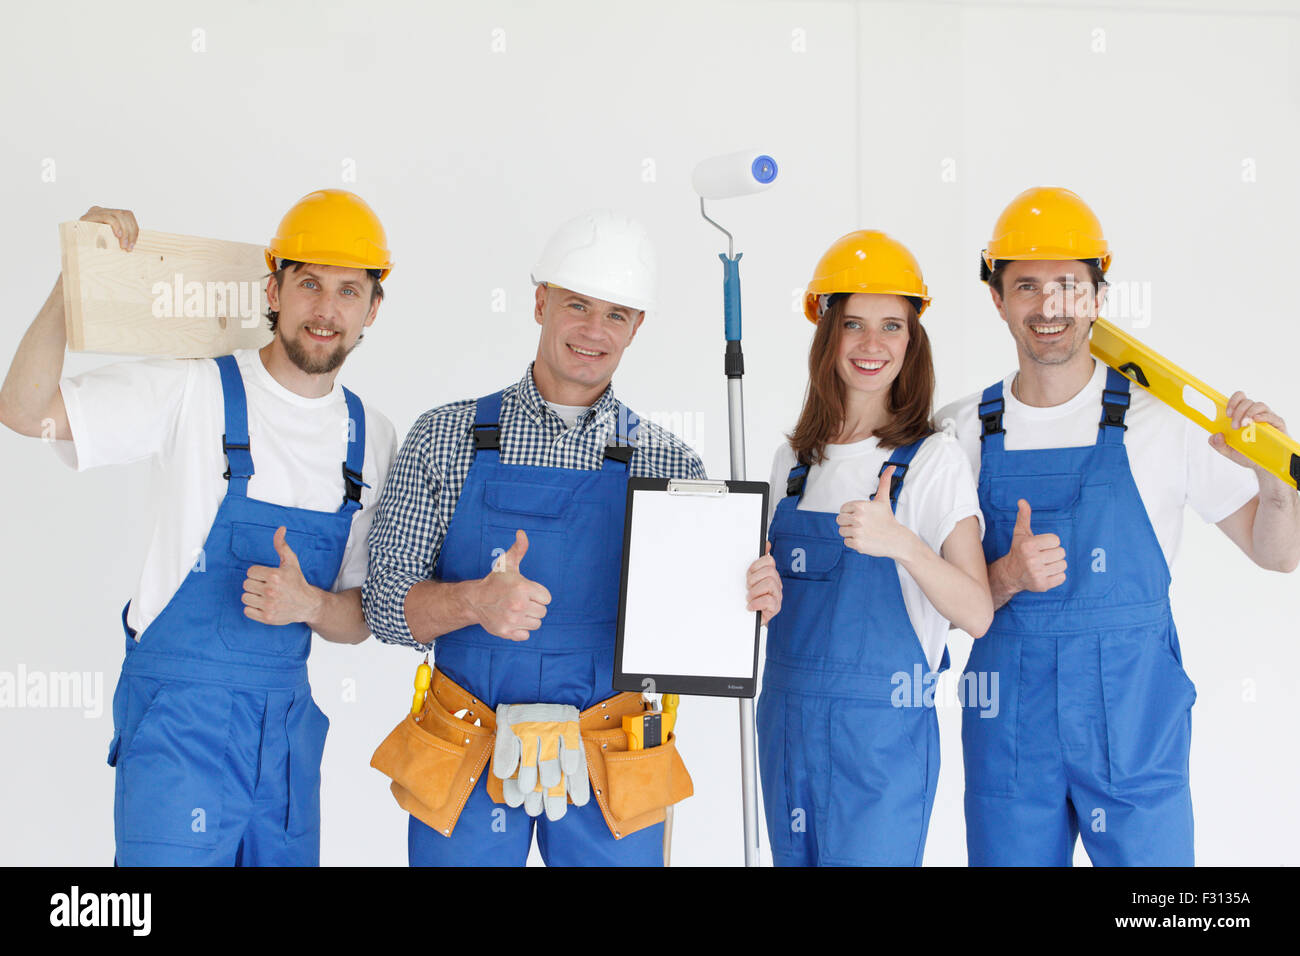 Group of smiling builders in hardhats with tools indoors - Stock Image